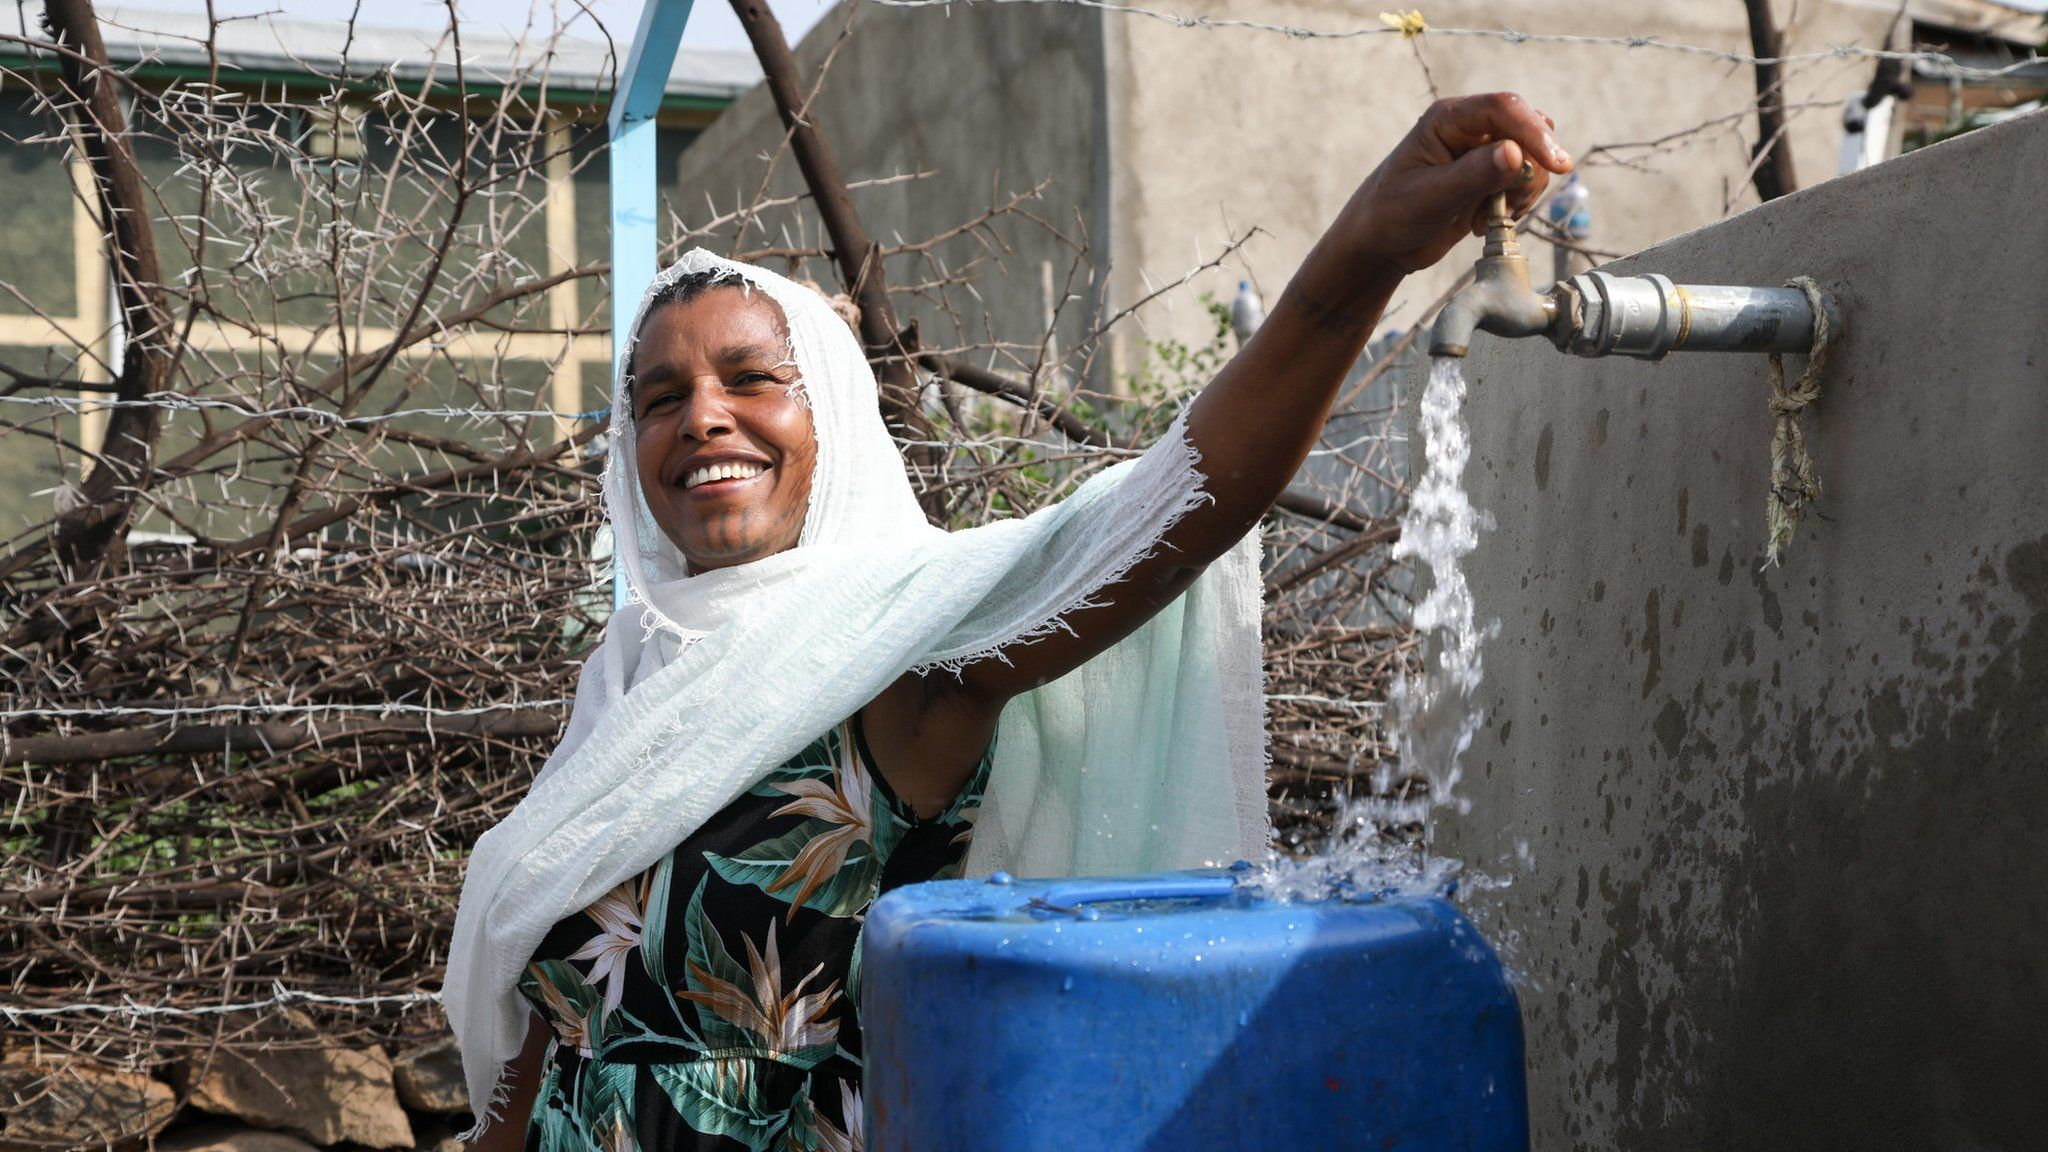 Wudenesh Negussie, 39, collects water from a local tap to take back to her family in Wolenchiti, Ethiopia, in 2019